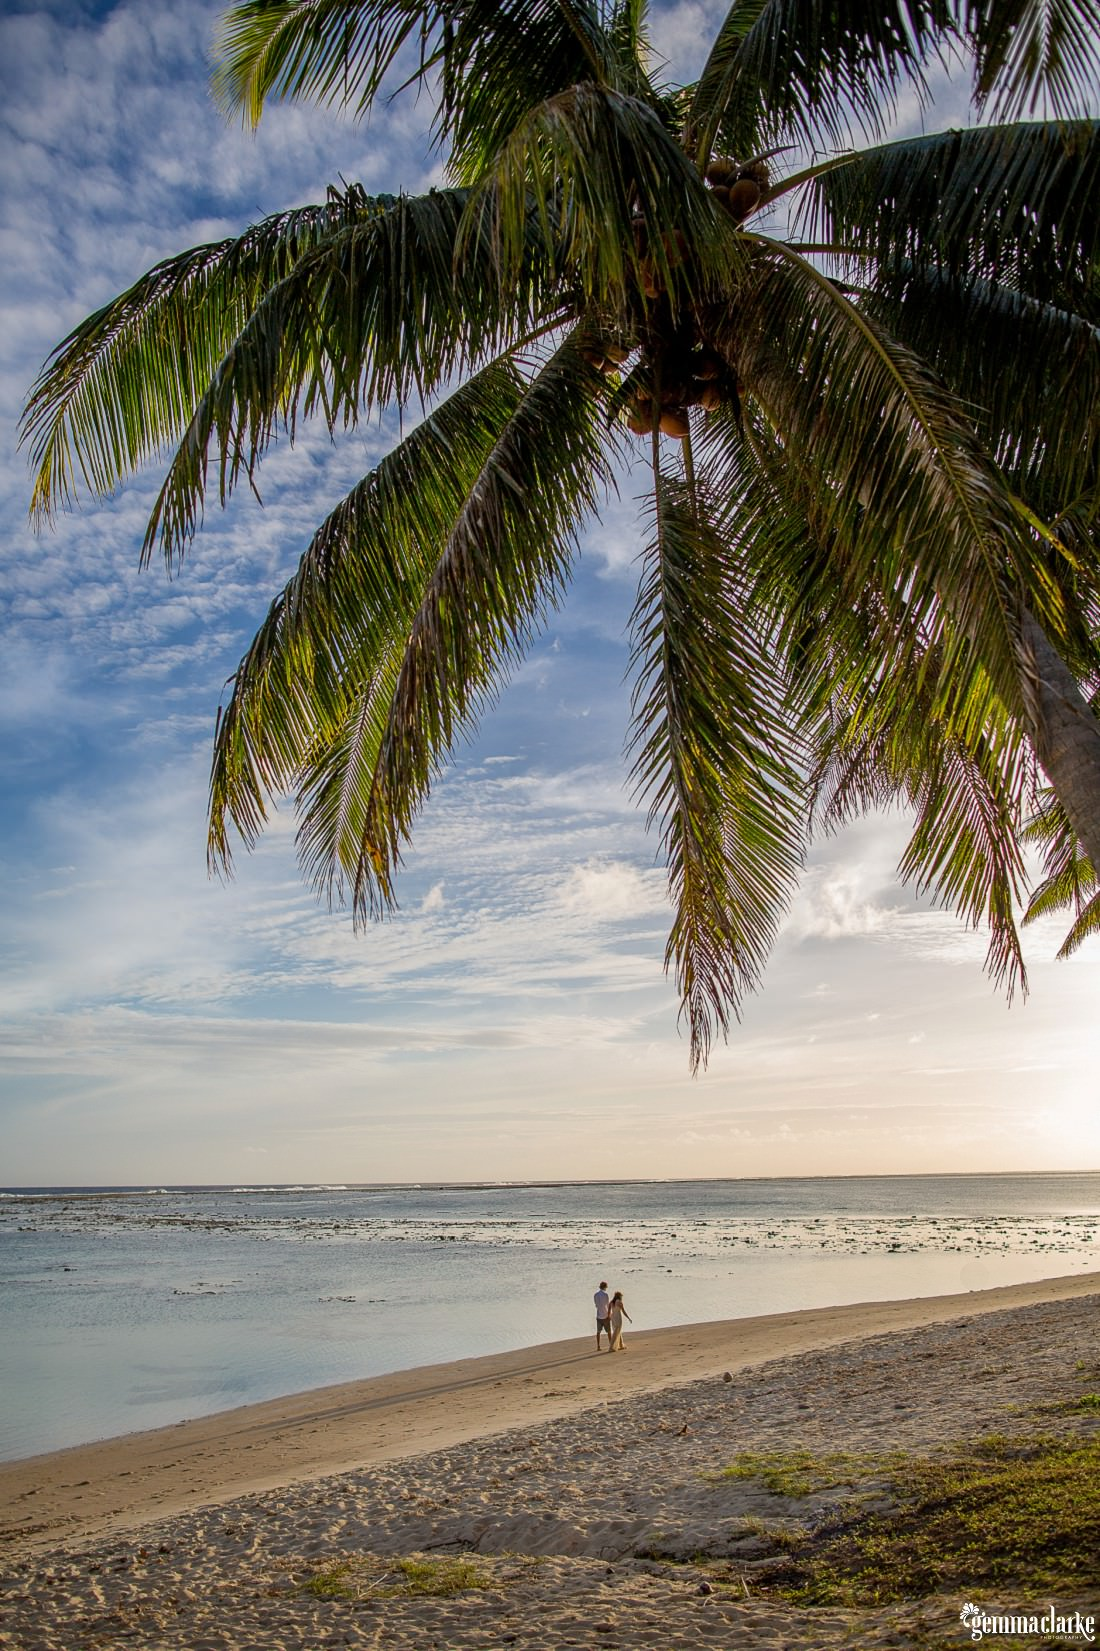 Large overhanging palm tree with the water and beach in the background and the couple very small walking away, portraits in paradise.